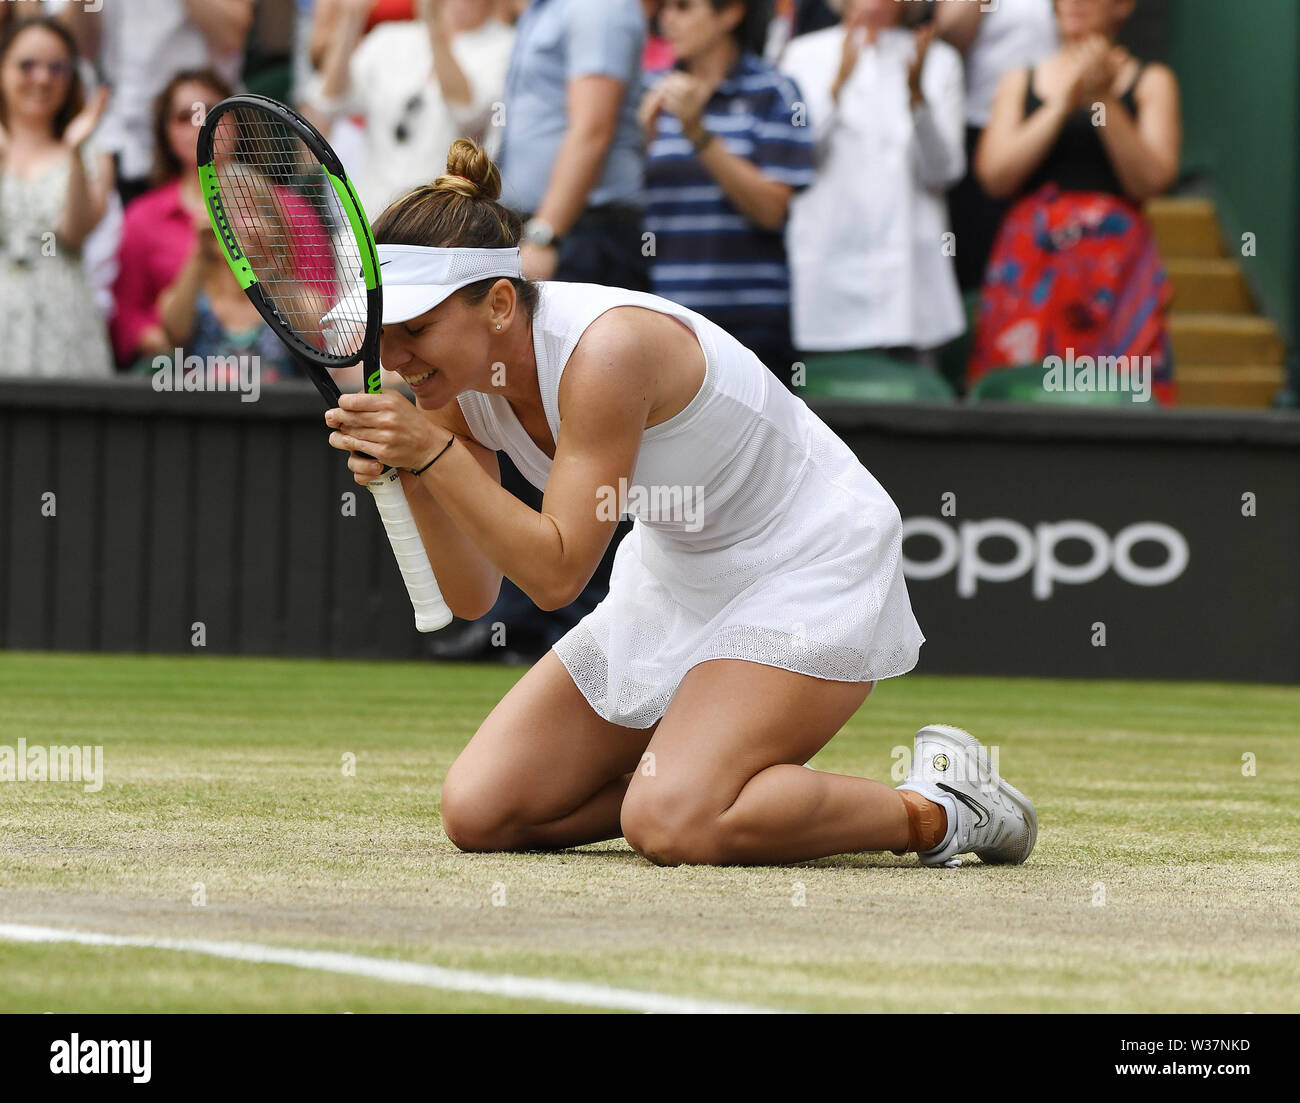 London, UK. 13th July, 2019. The Championships Wimbledon 2019 13072019 Simona Halep sinks to her knees as she wins Ladies Singles Final Credit: Roger Parker/Alamy Live News - Stock Image